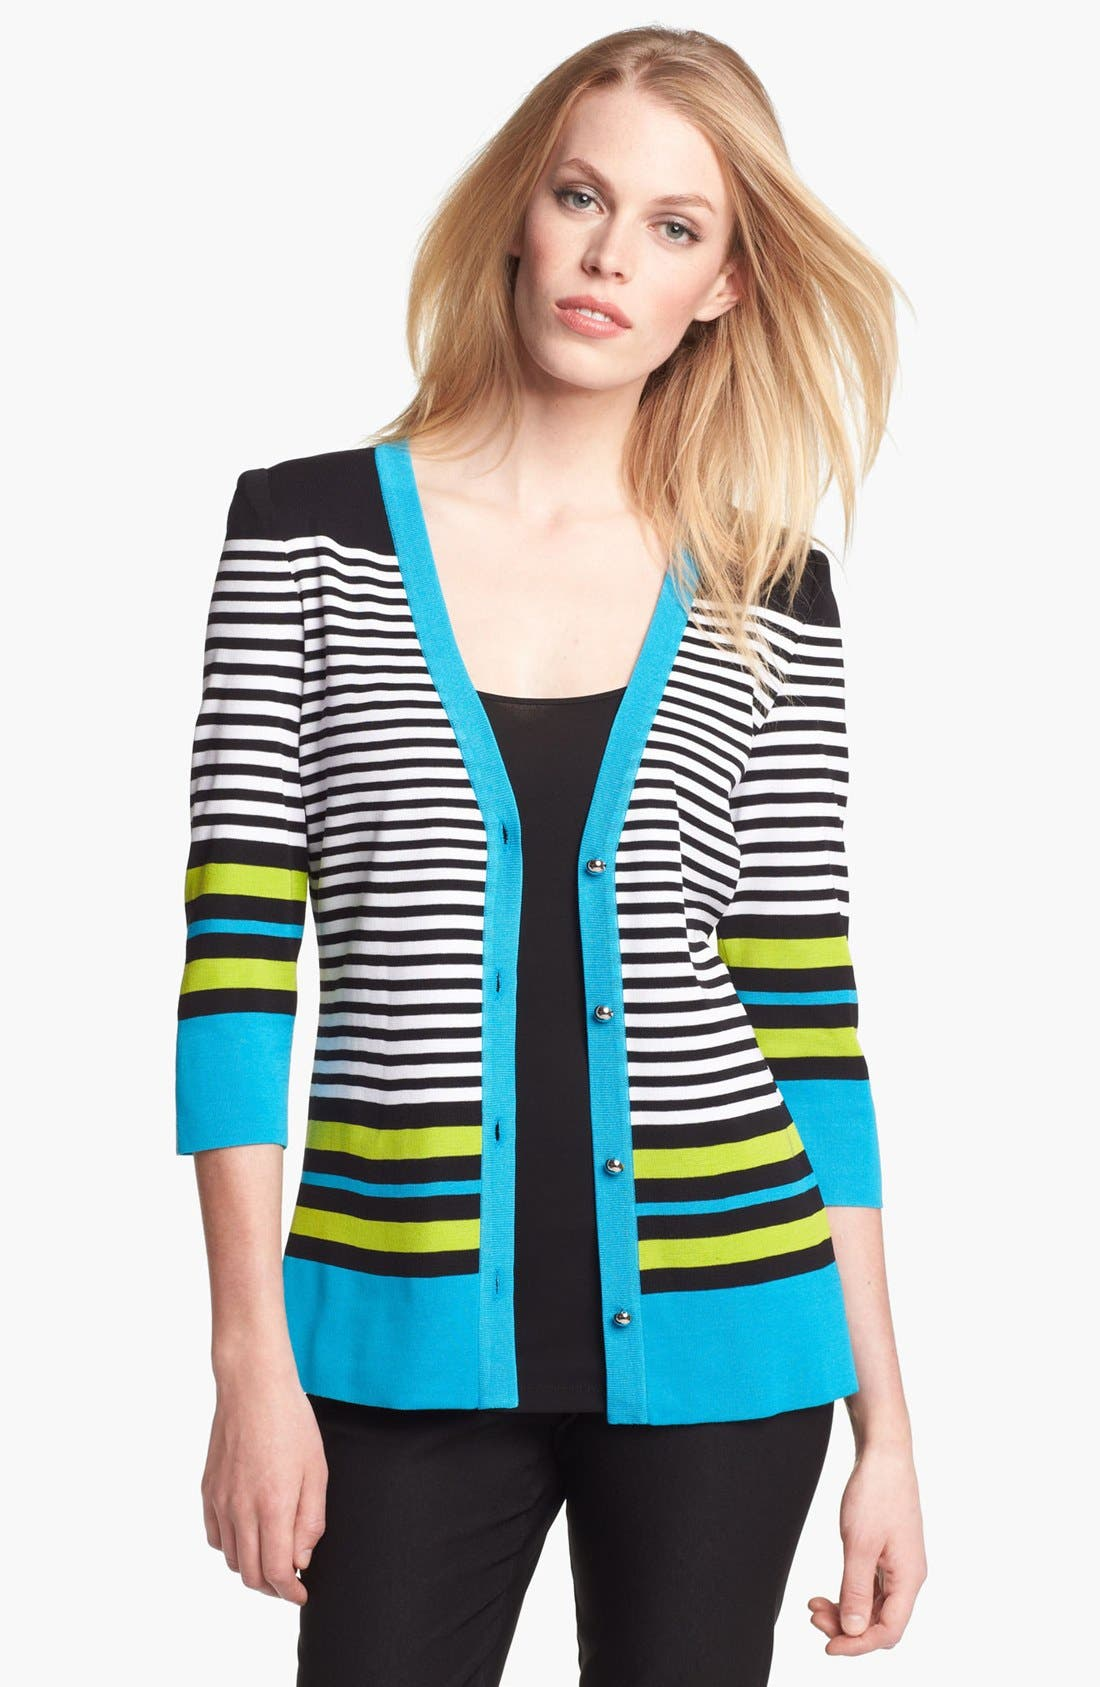 Alternate Image 1 Selected - Exclusively Misook 'Gina' Cardigan (Petite)